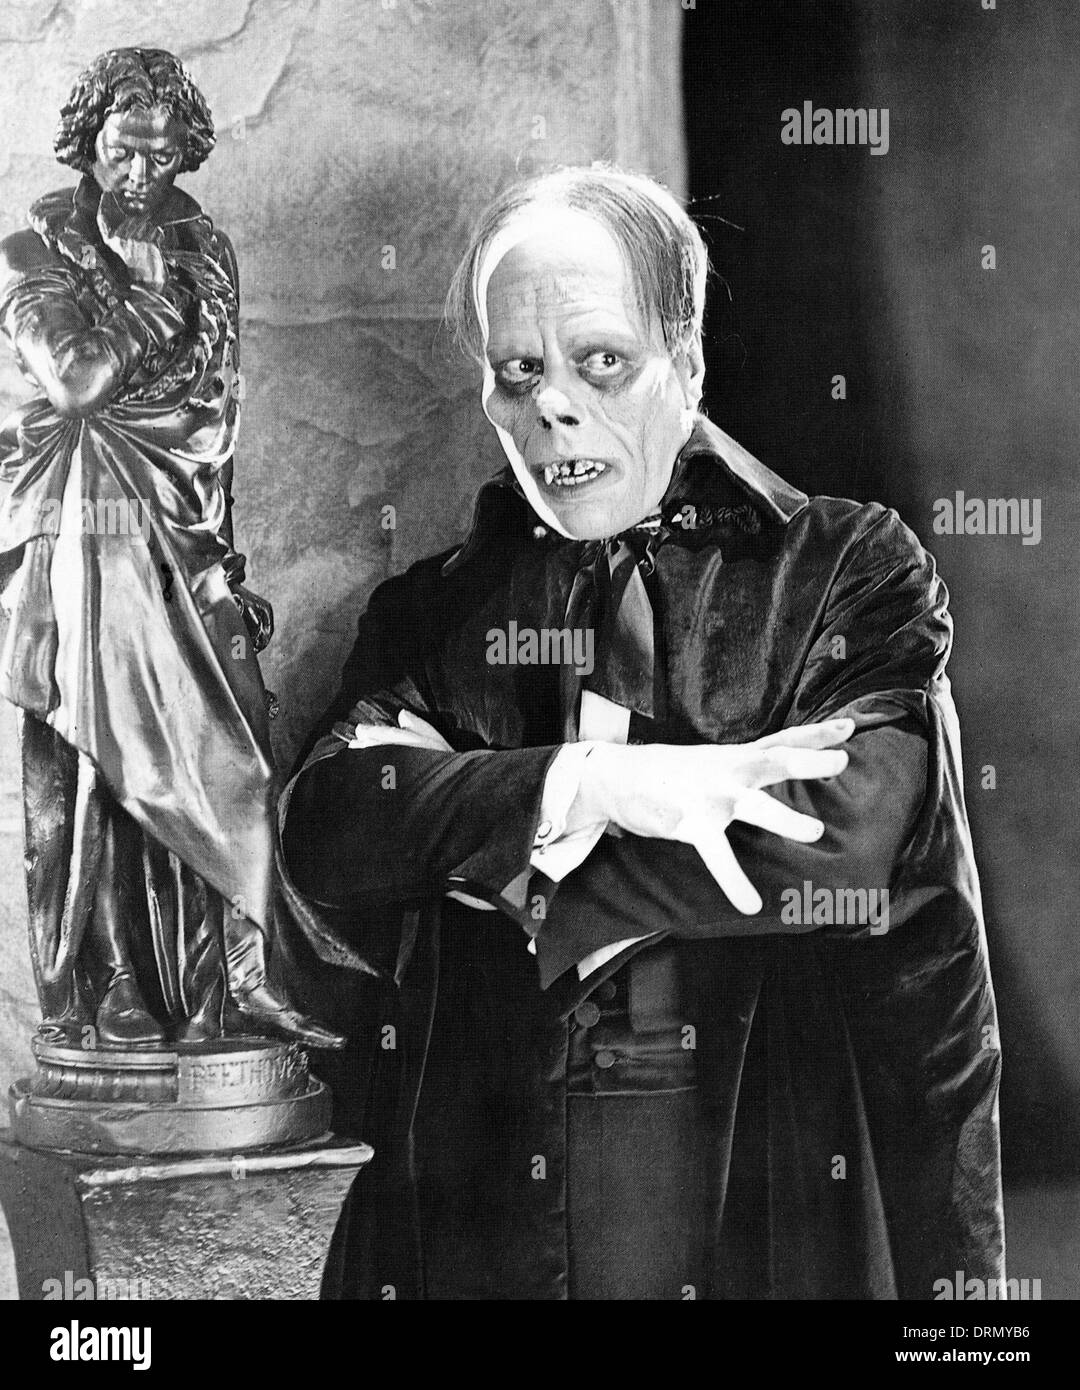 THE PHANTOM OF THE OPERA 1925 Universal Pictures film with Lon Chaney - Stock Image